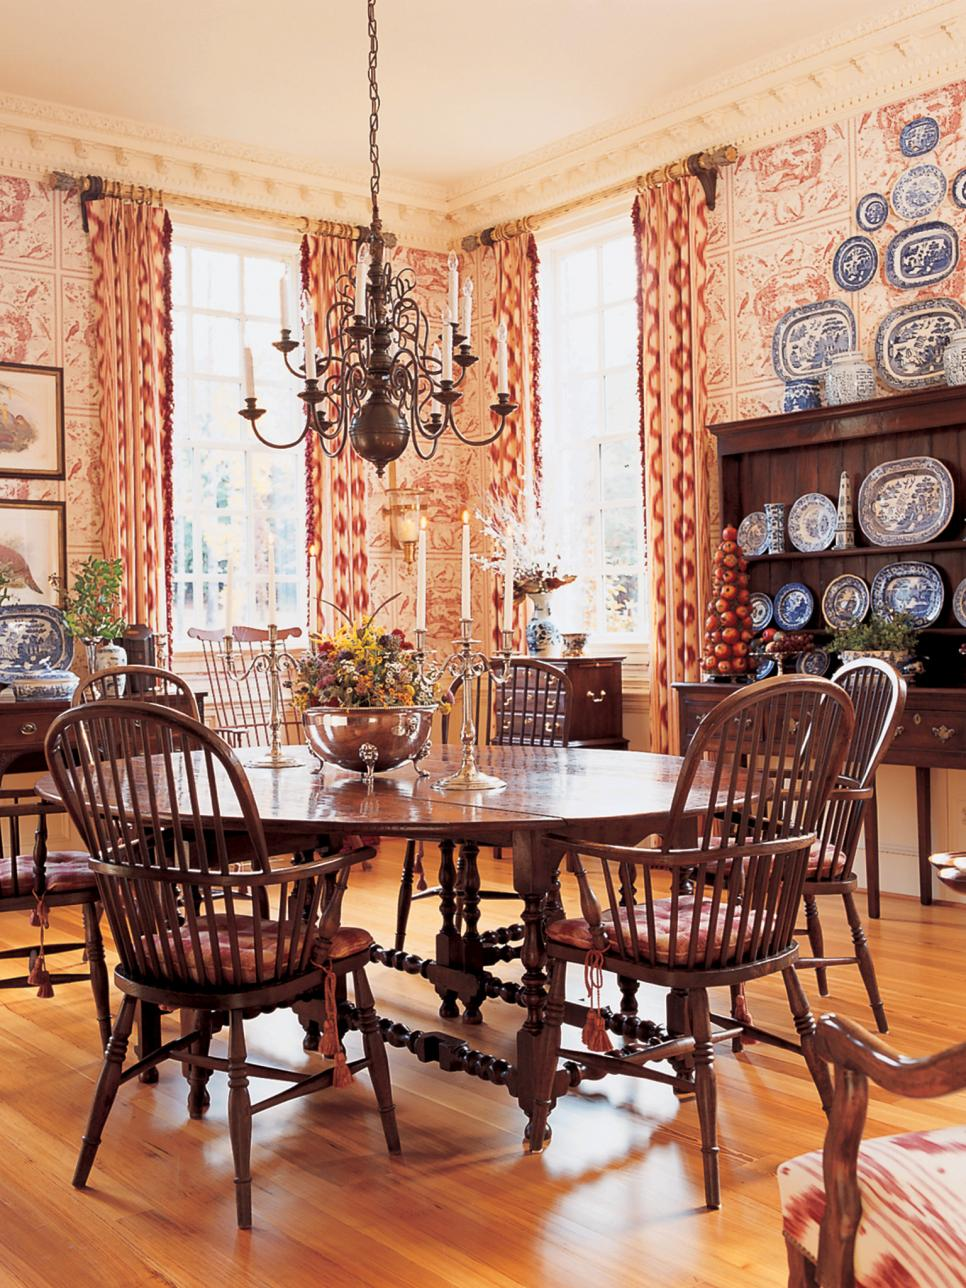 Dining Room With Toile Wallpaper, Brass Chandelier, Plate Collection